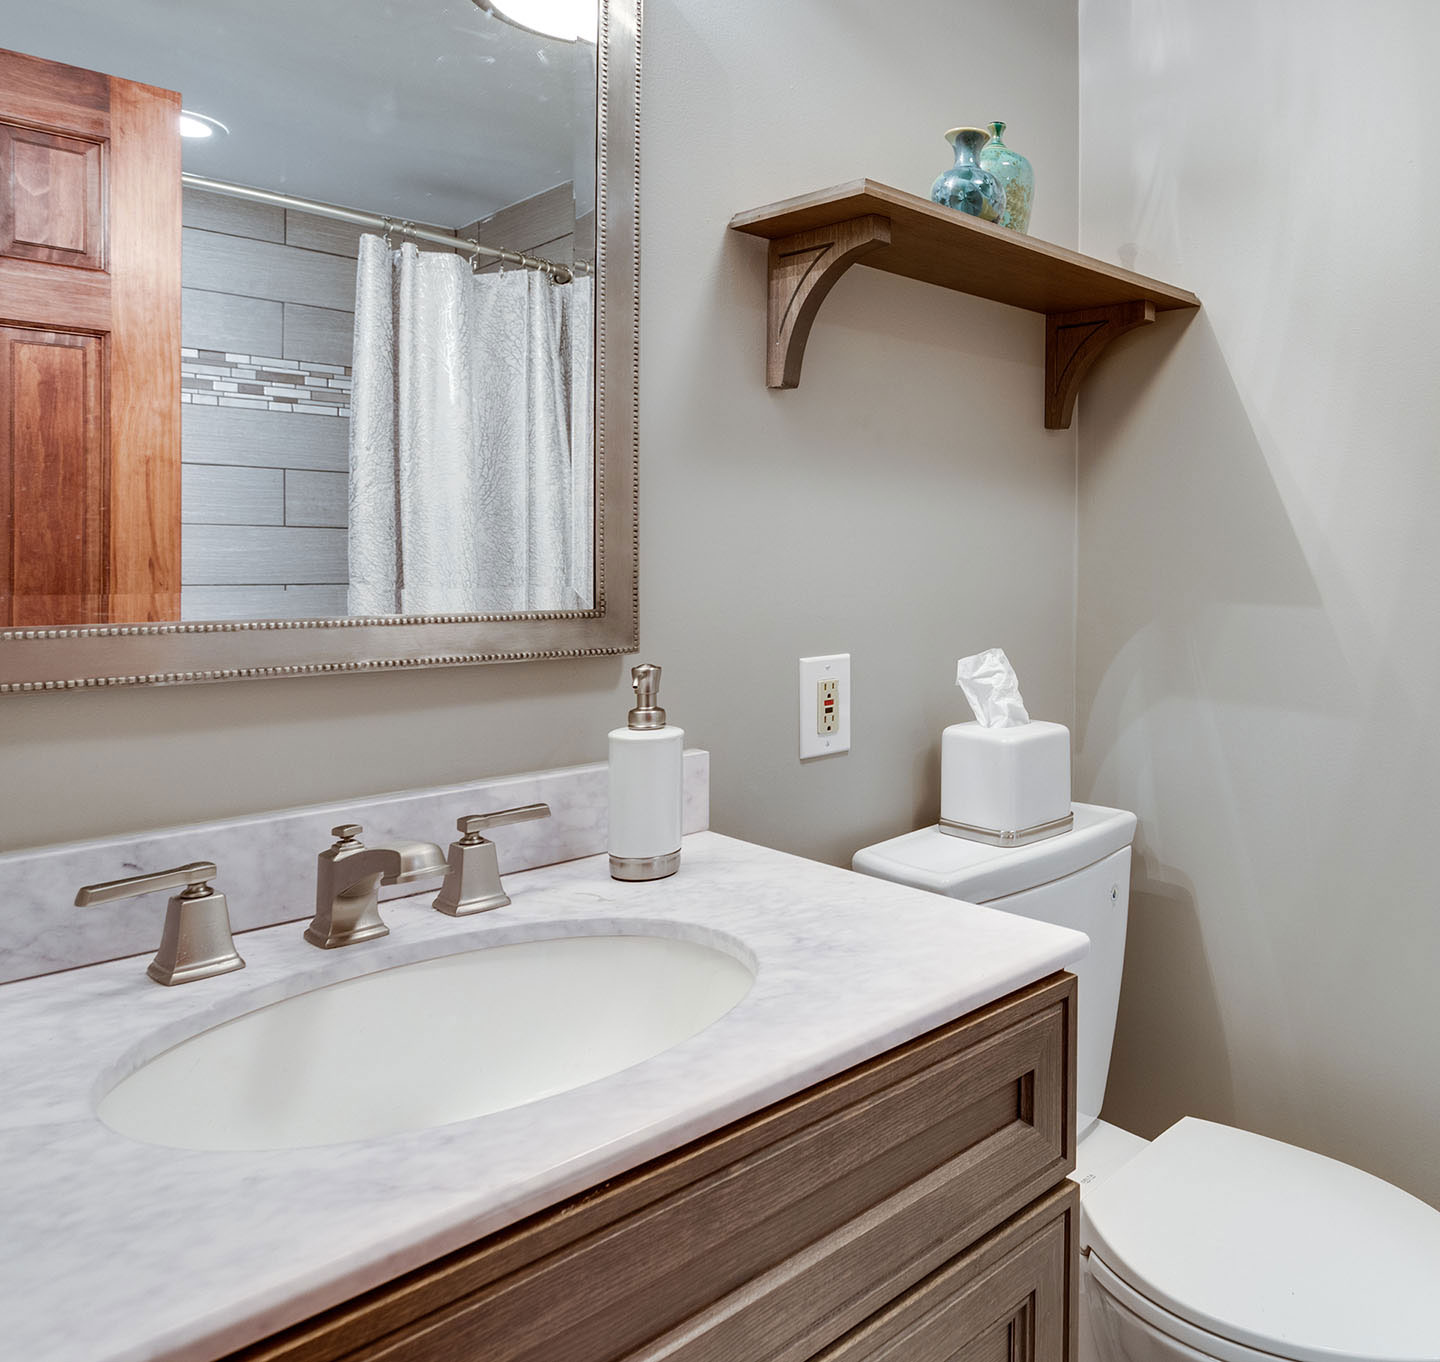 Bathroom Remodeling Jobs bathroom remodeling services - a&c remodeling contractors